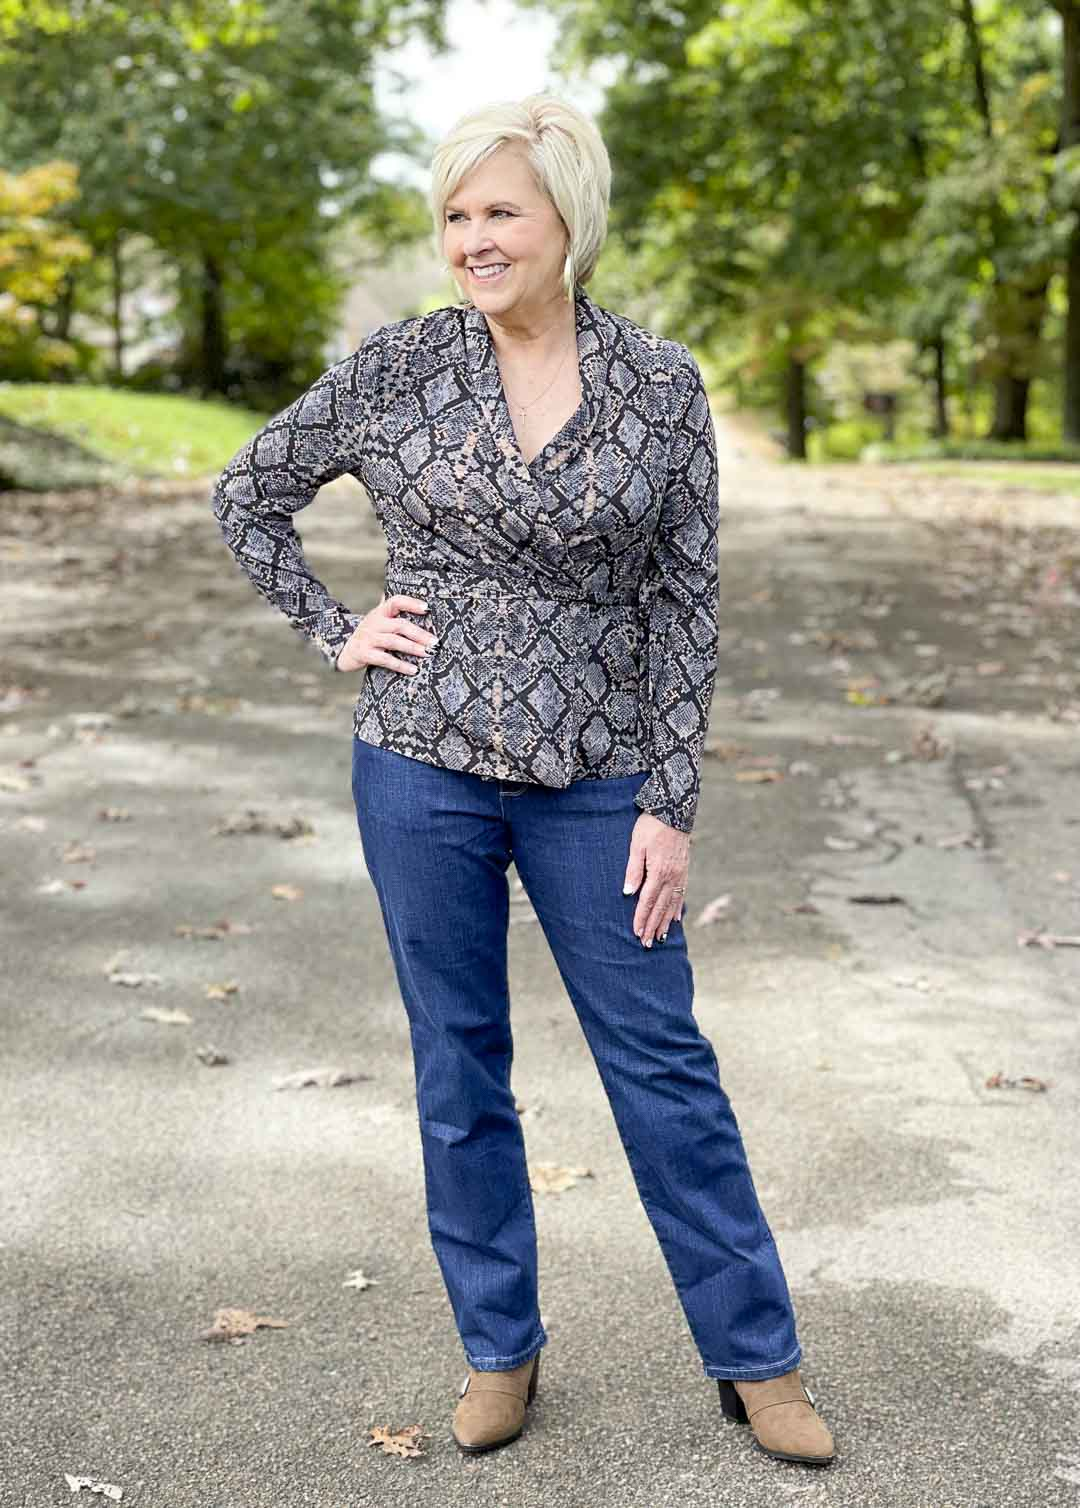 Over 40 Fashion Blogger, Tania Stephens, is showing her recent Walmart haul including this snake print wrap top and bootcut jeans